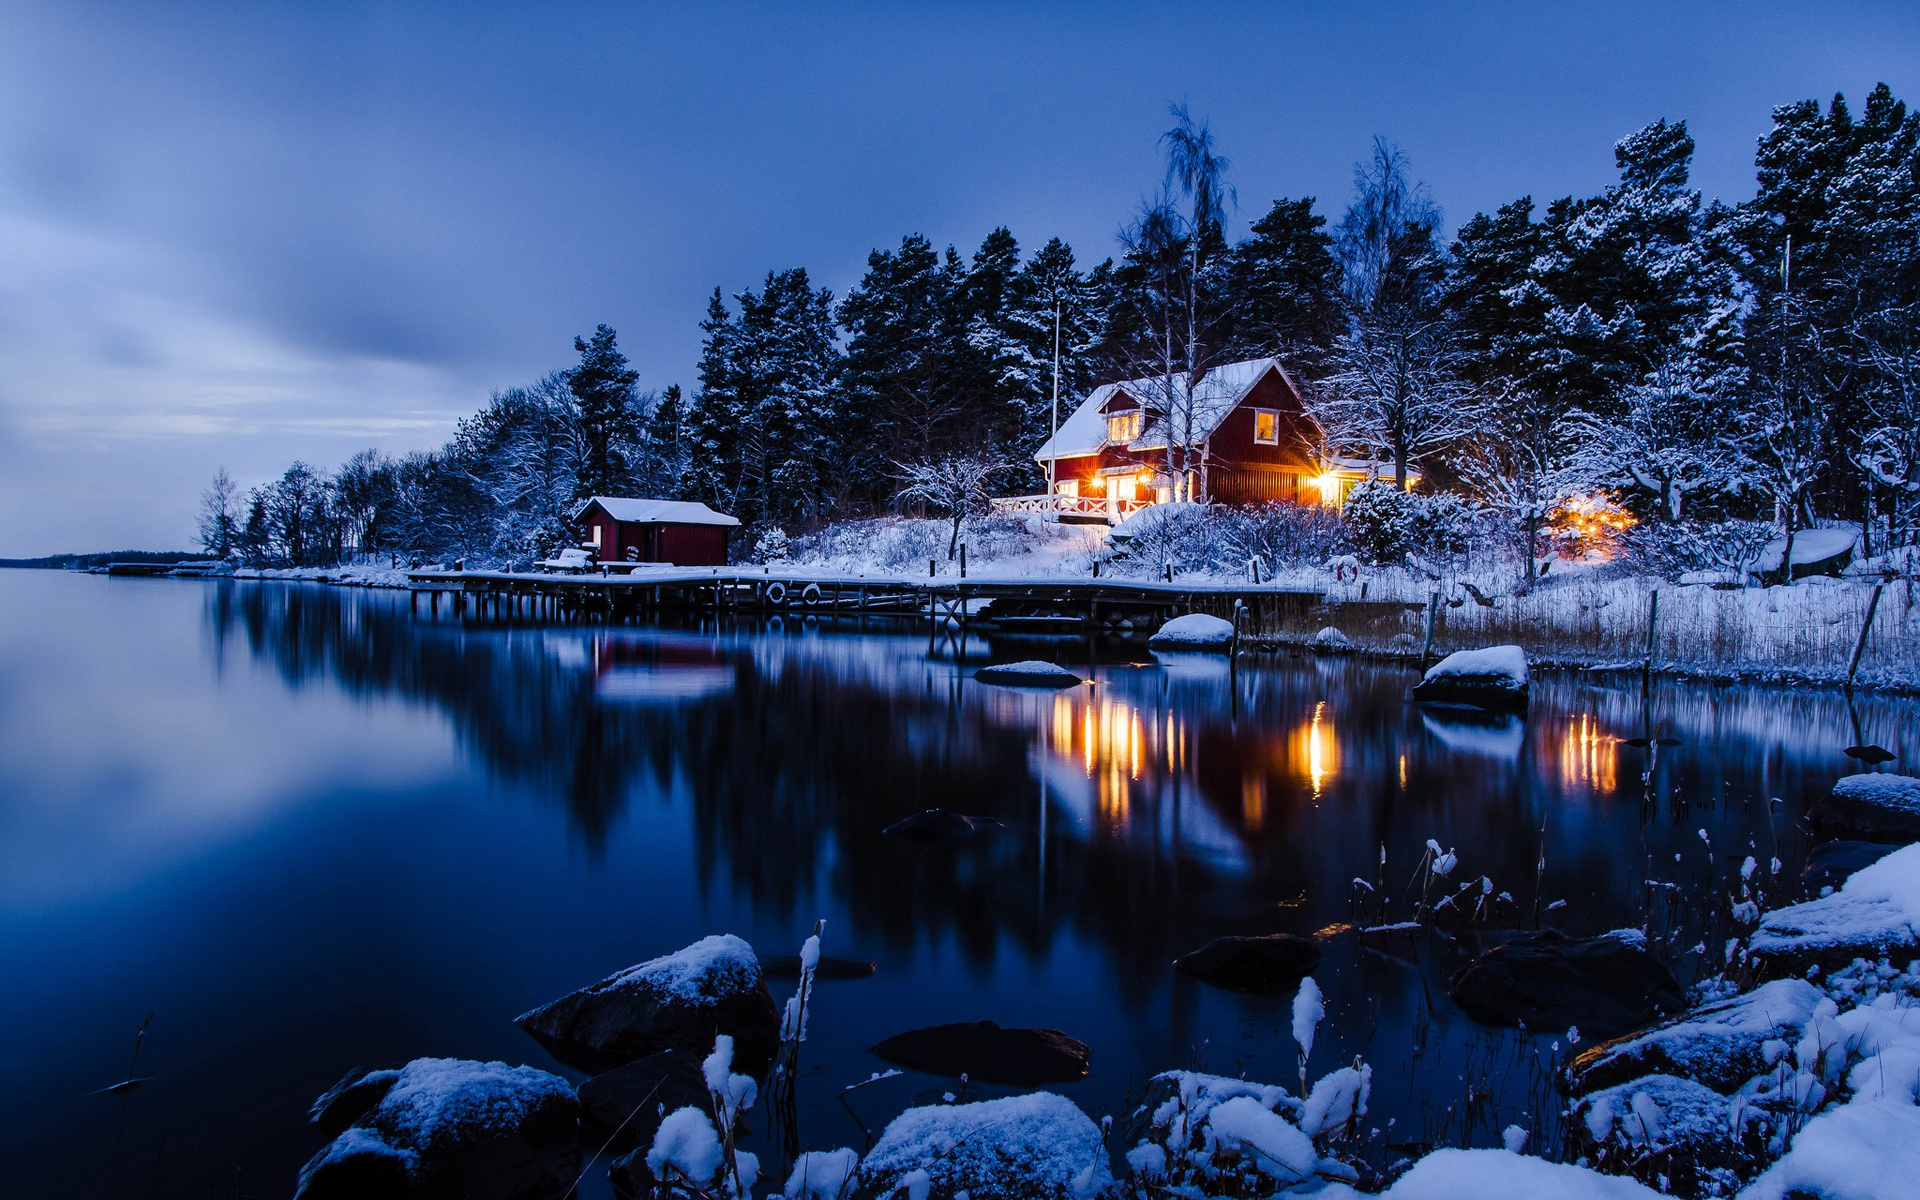 sweden landscape nighty desktop downloads